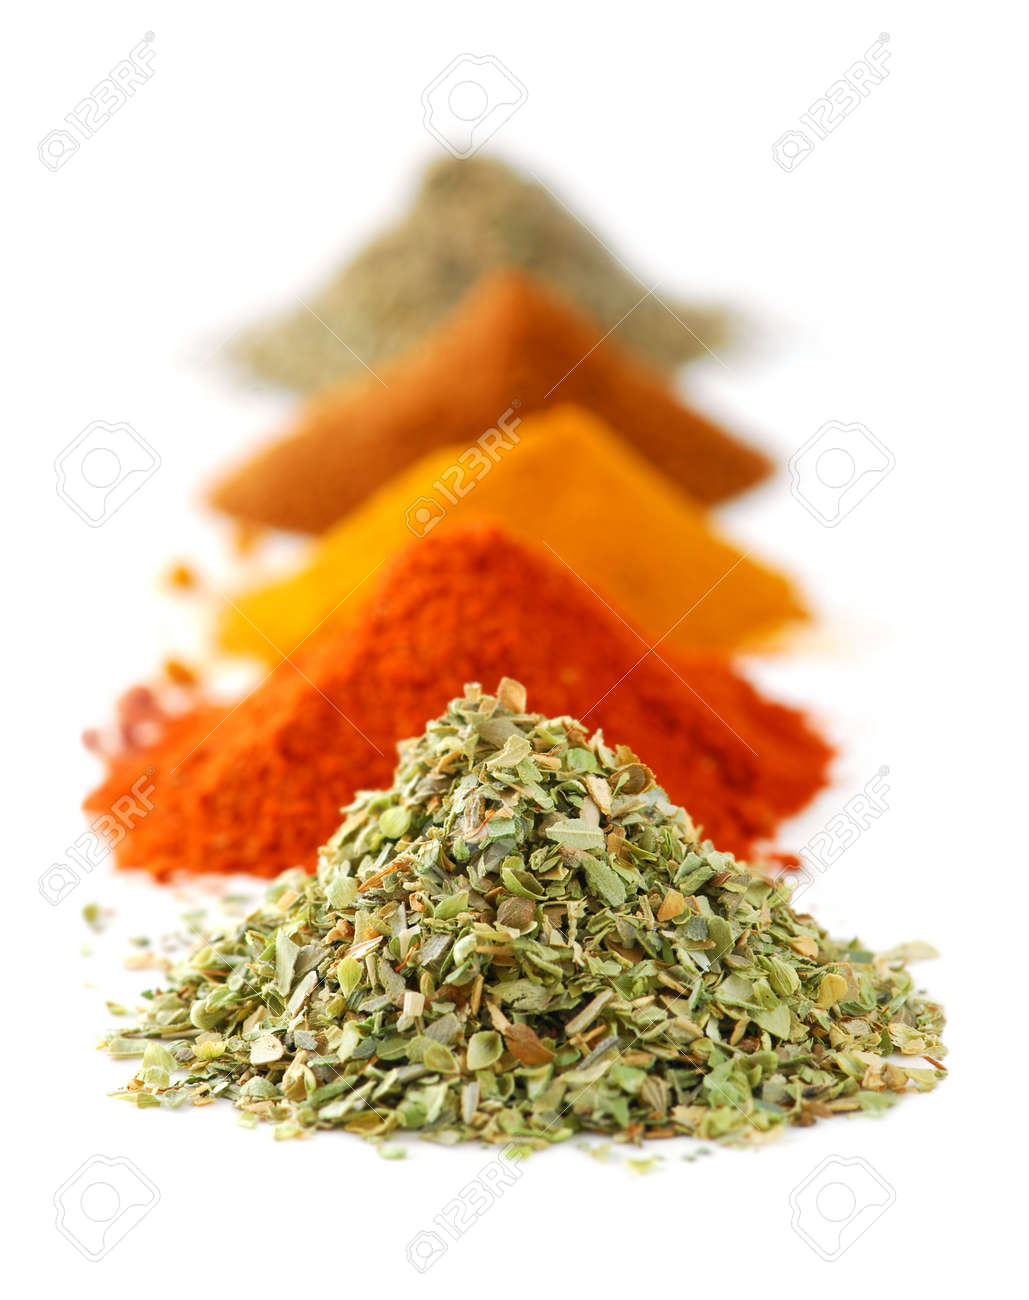 Heaps of various ground spices on white background Stock Photo - 2214171